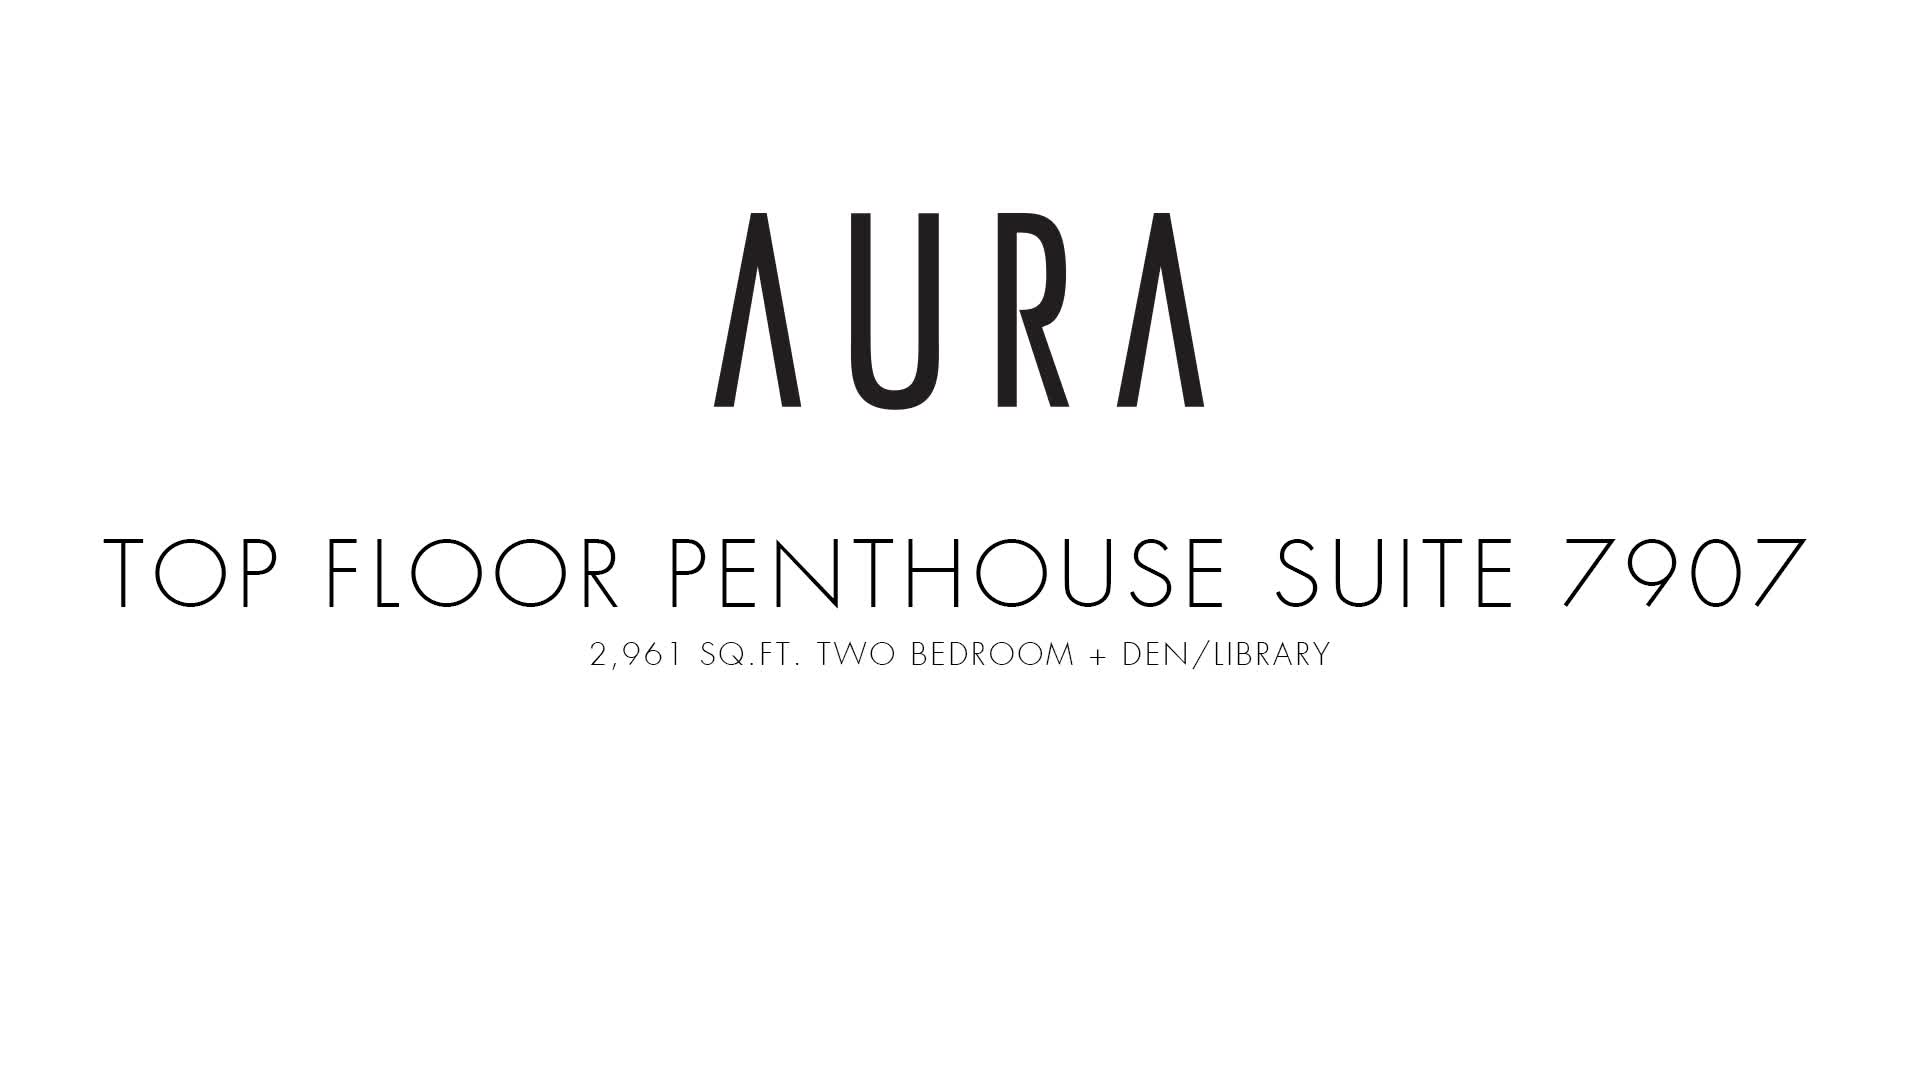 Aura at College Park - Penthouse 7907 Virtual Tour